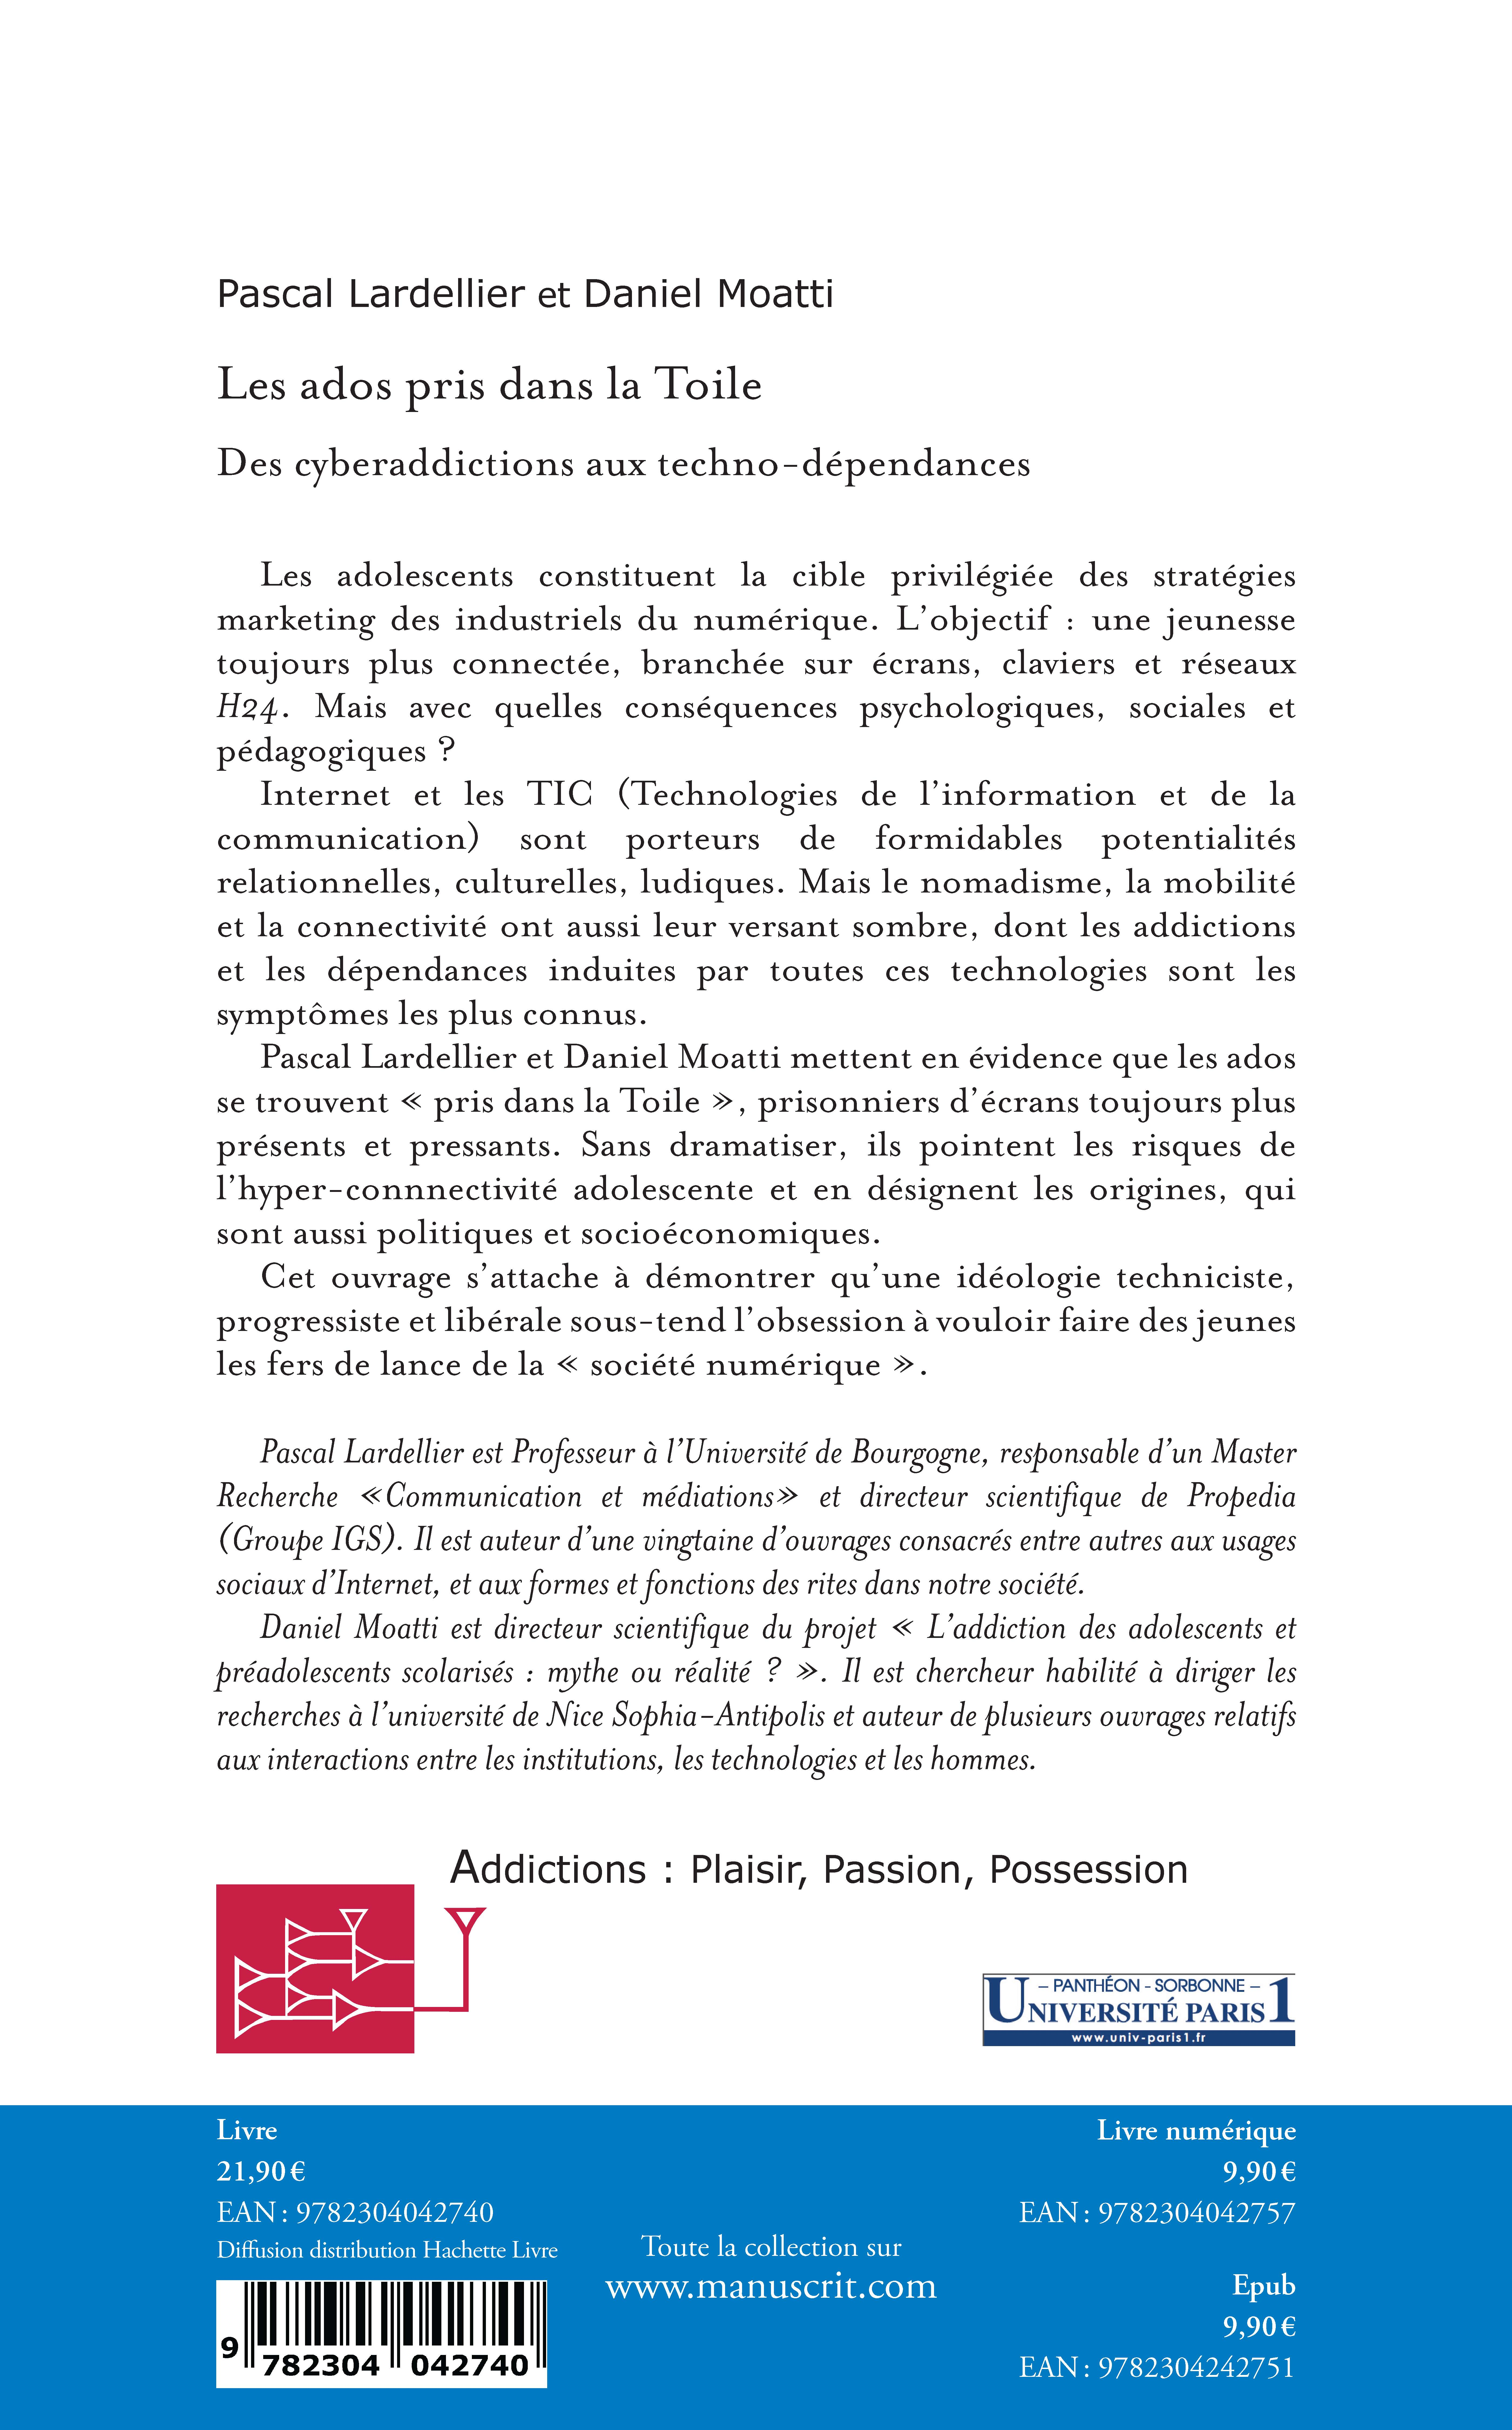 2014-04-14-LesadosprisdanslaToilebackcover.jpg